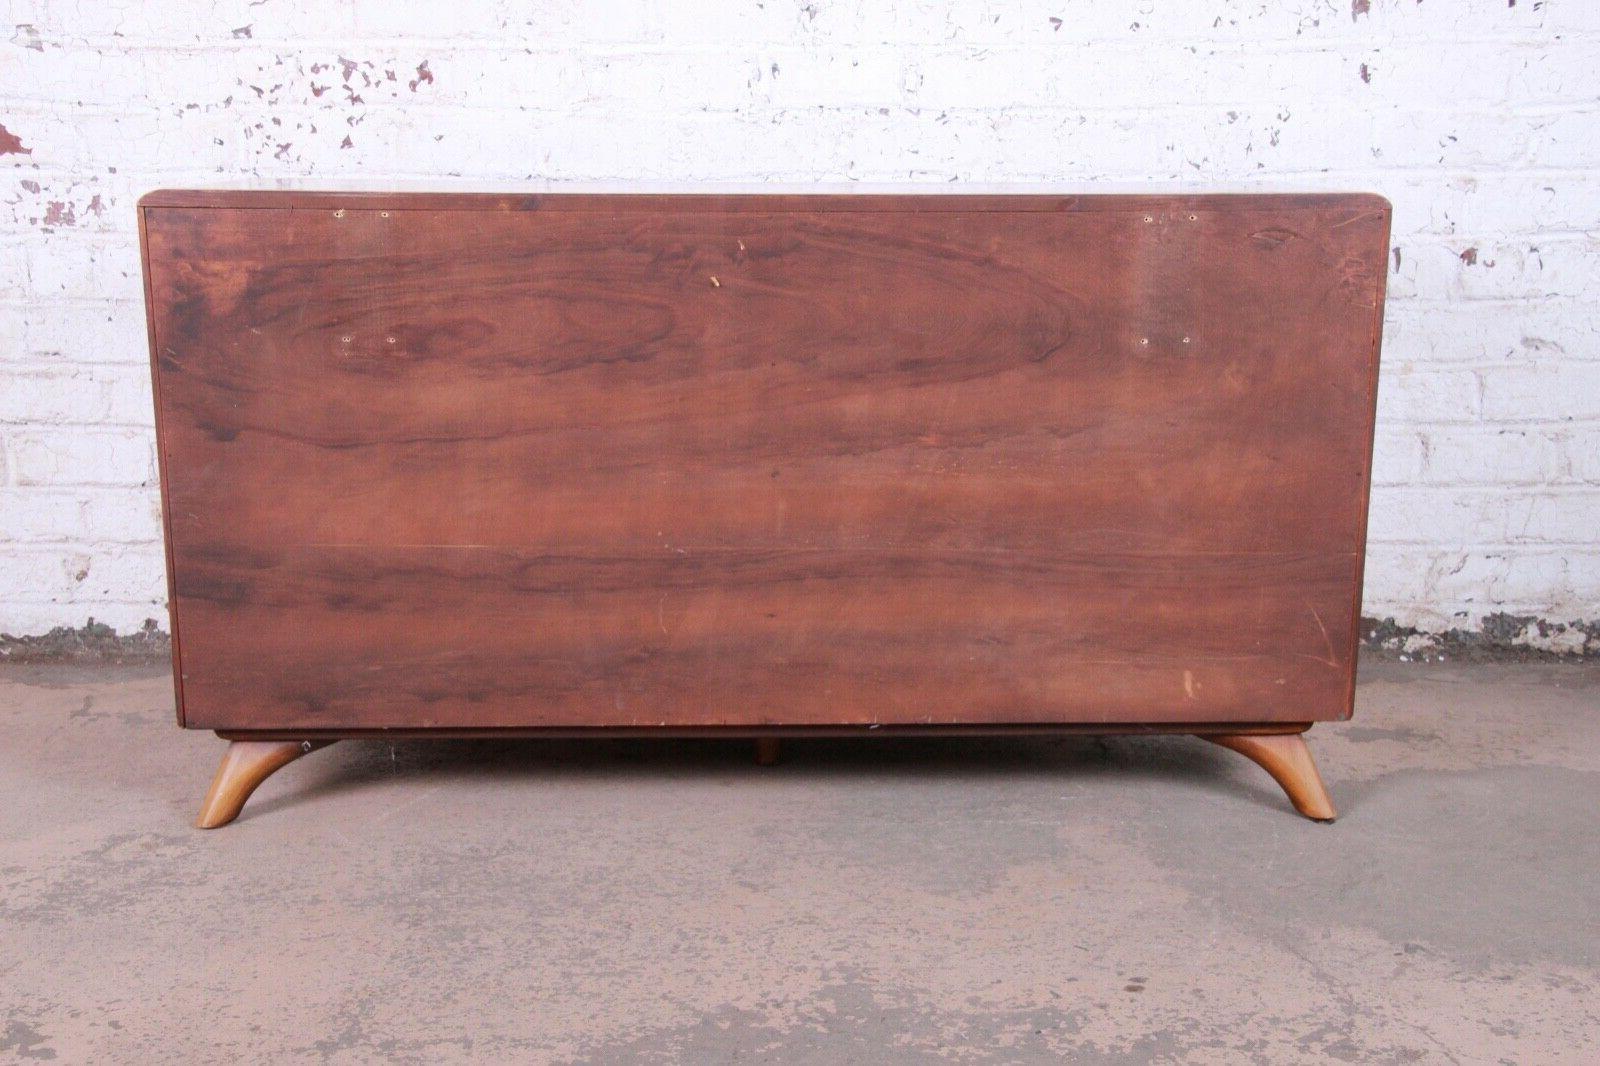 Franklin Shockey Rustic Modern Sculptured Pine Double Dresser Or Credenza,  1950S Pertaining To Lowrey Credenzas (View 3 of 20)